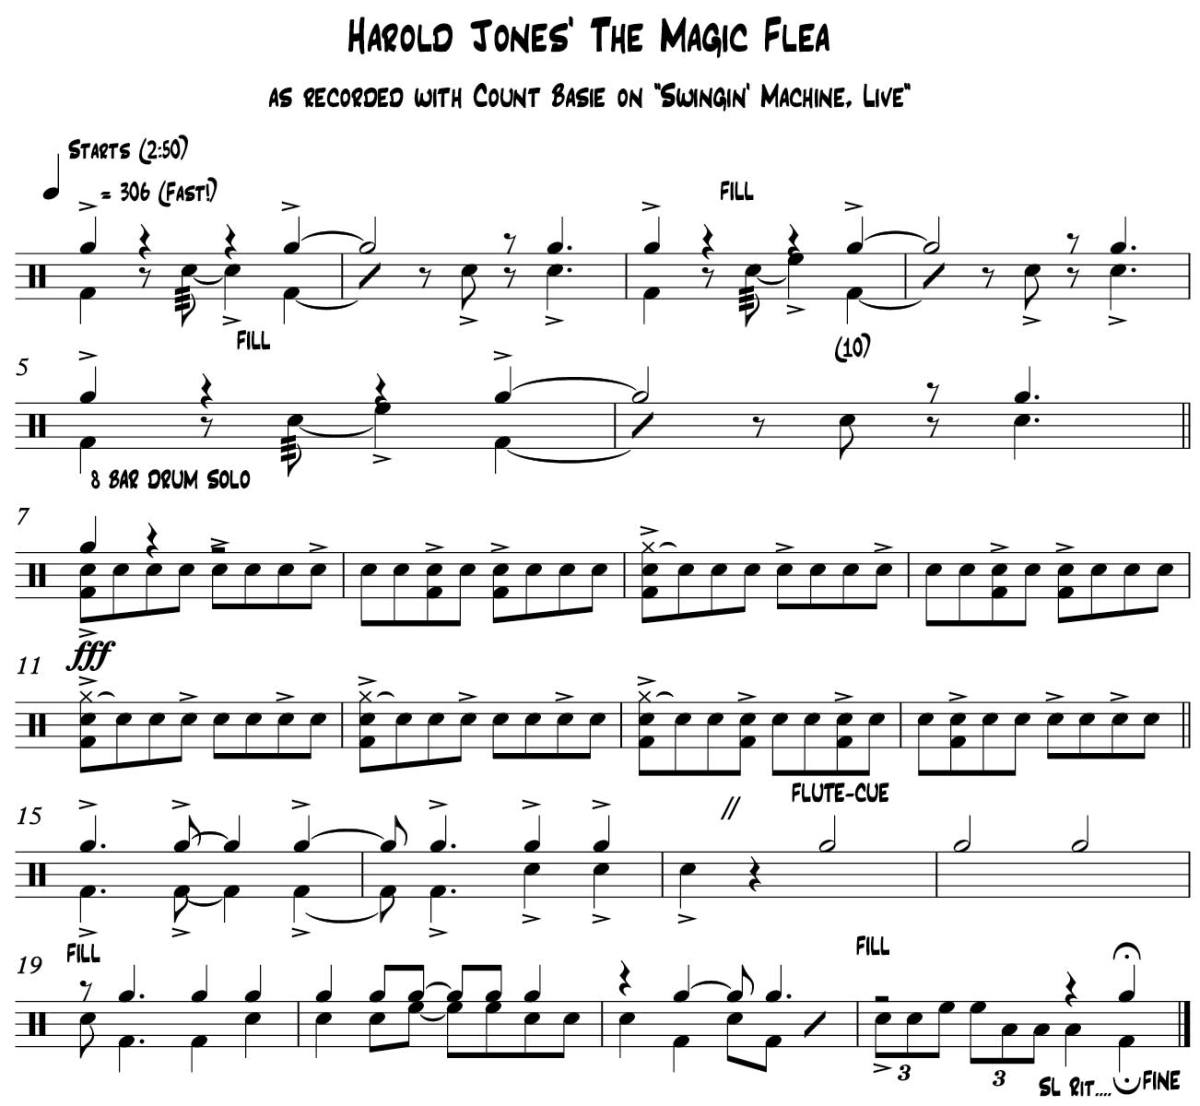 practice pad lessons jazz harold jones' the magic flea lesson